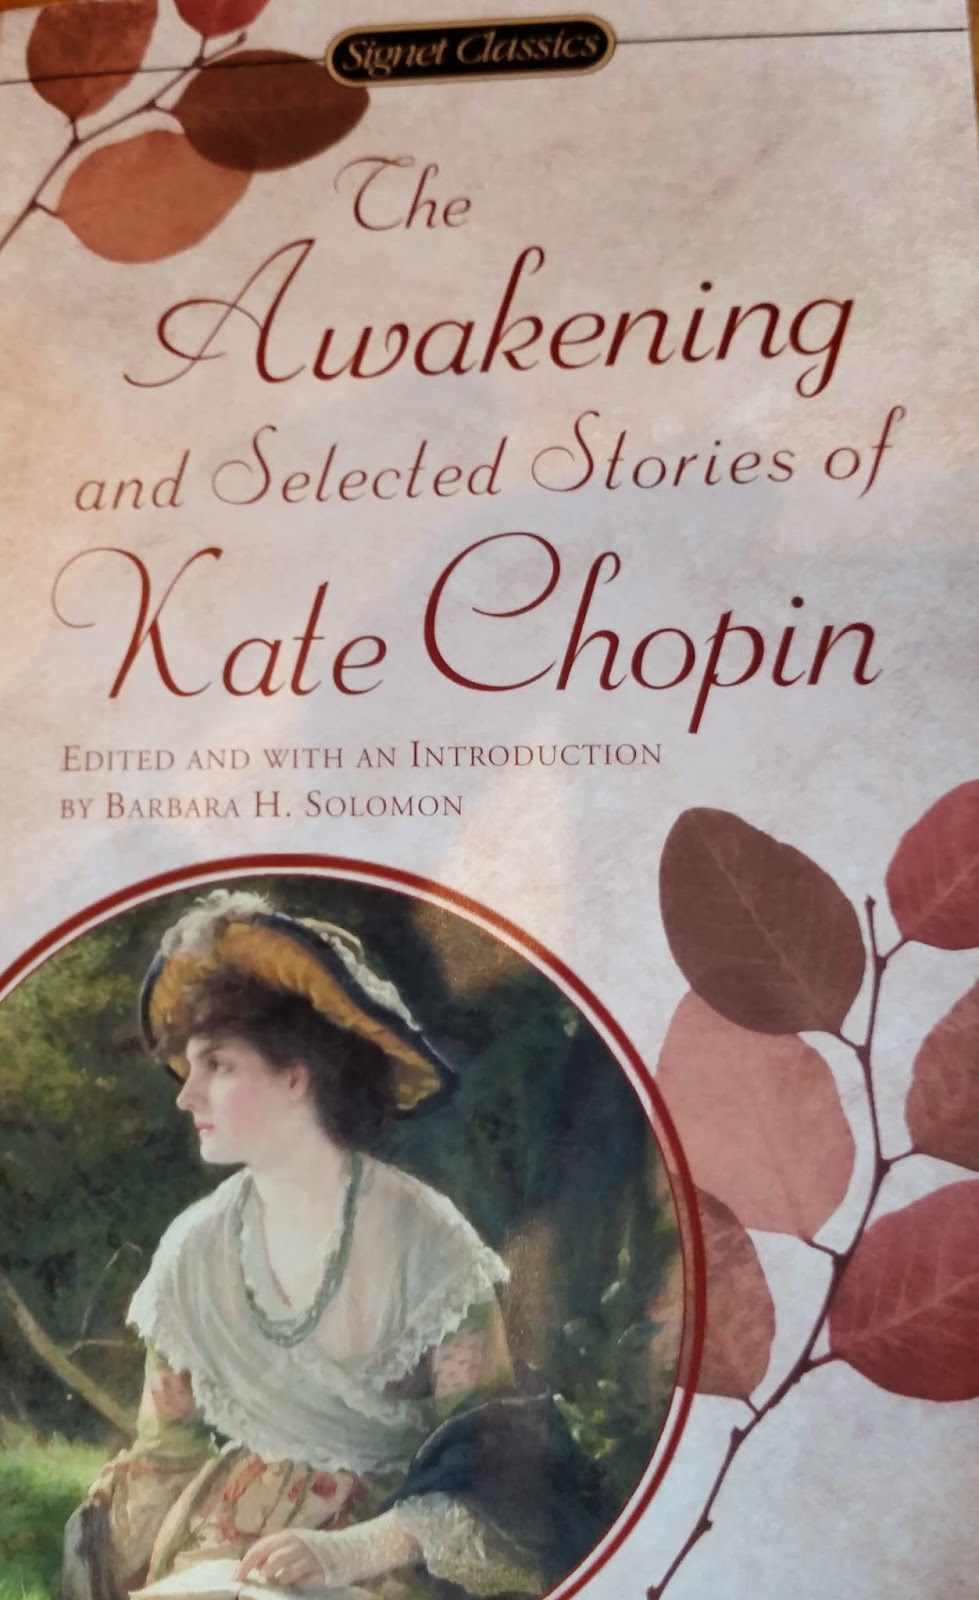 short story a shameful affair by kate chopin by any other nerd book cover to the awakening and selected stories of kate chopin by kate chopin and